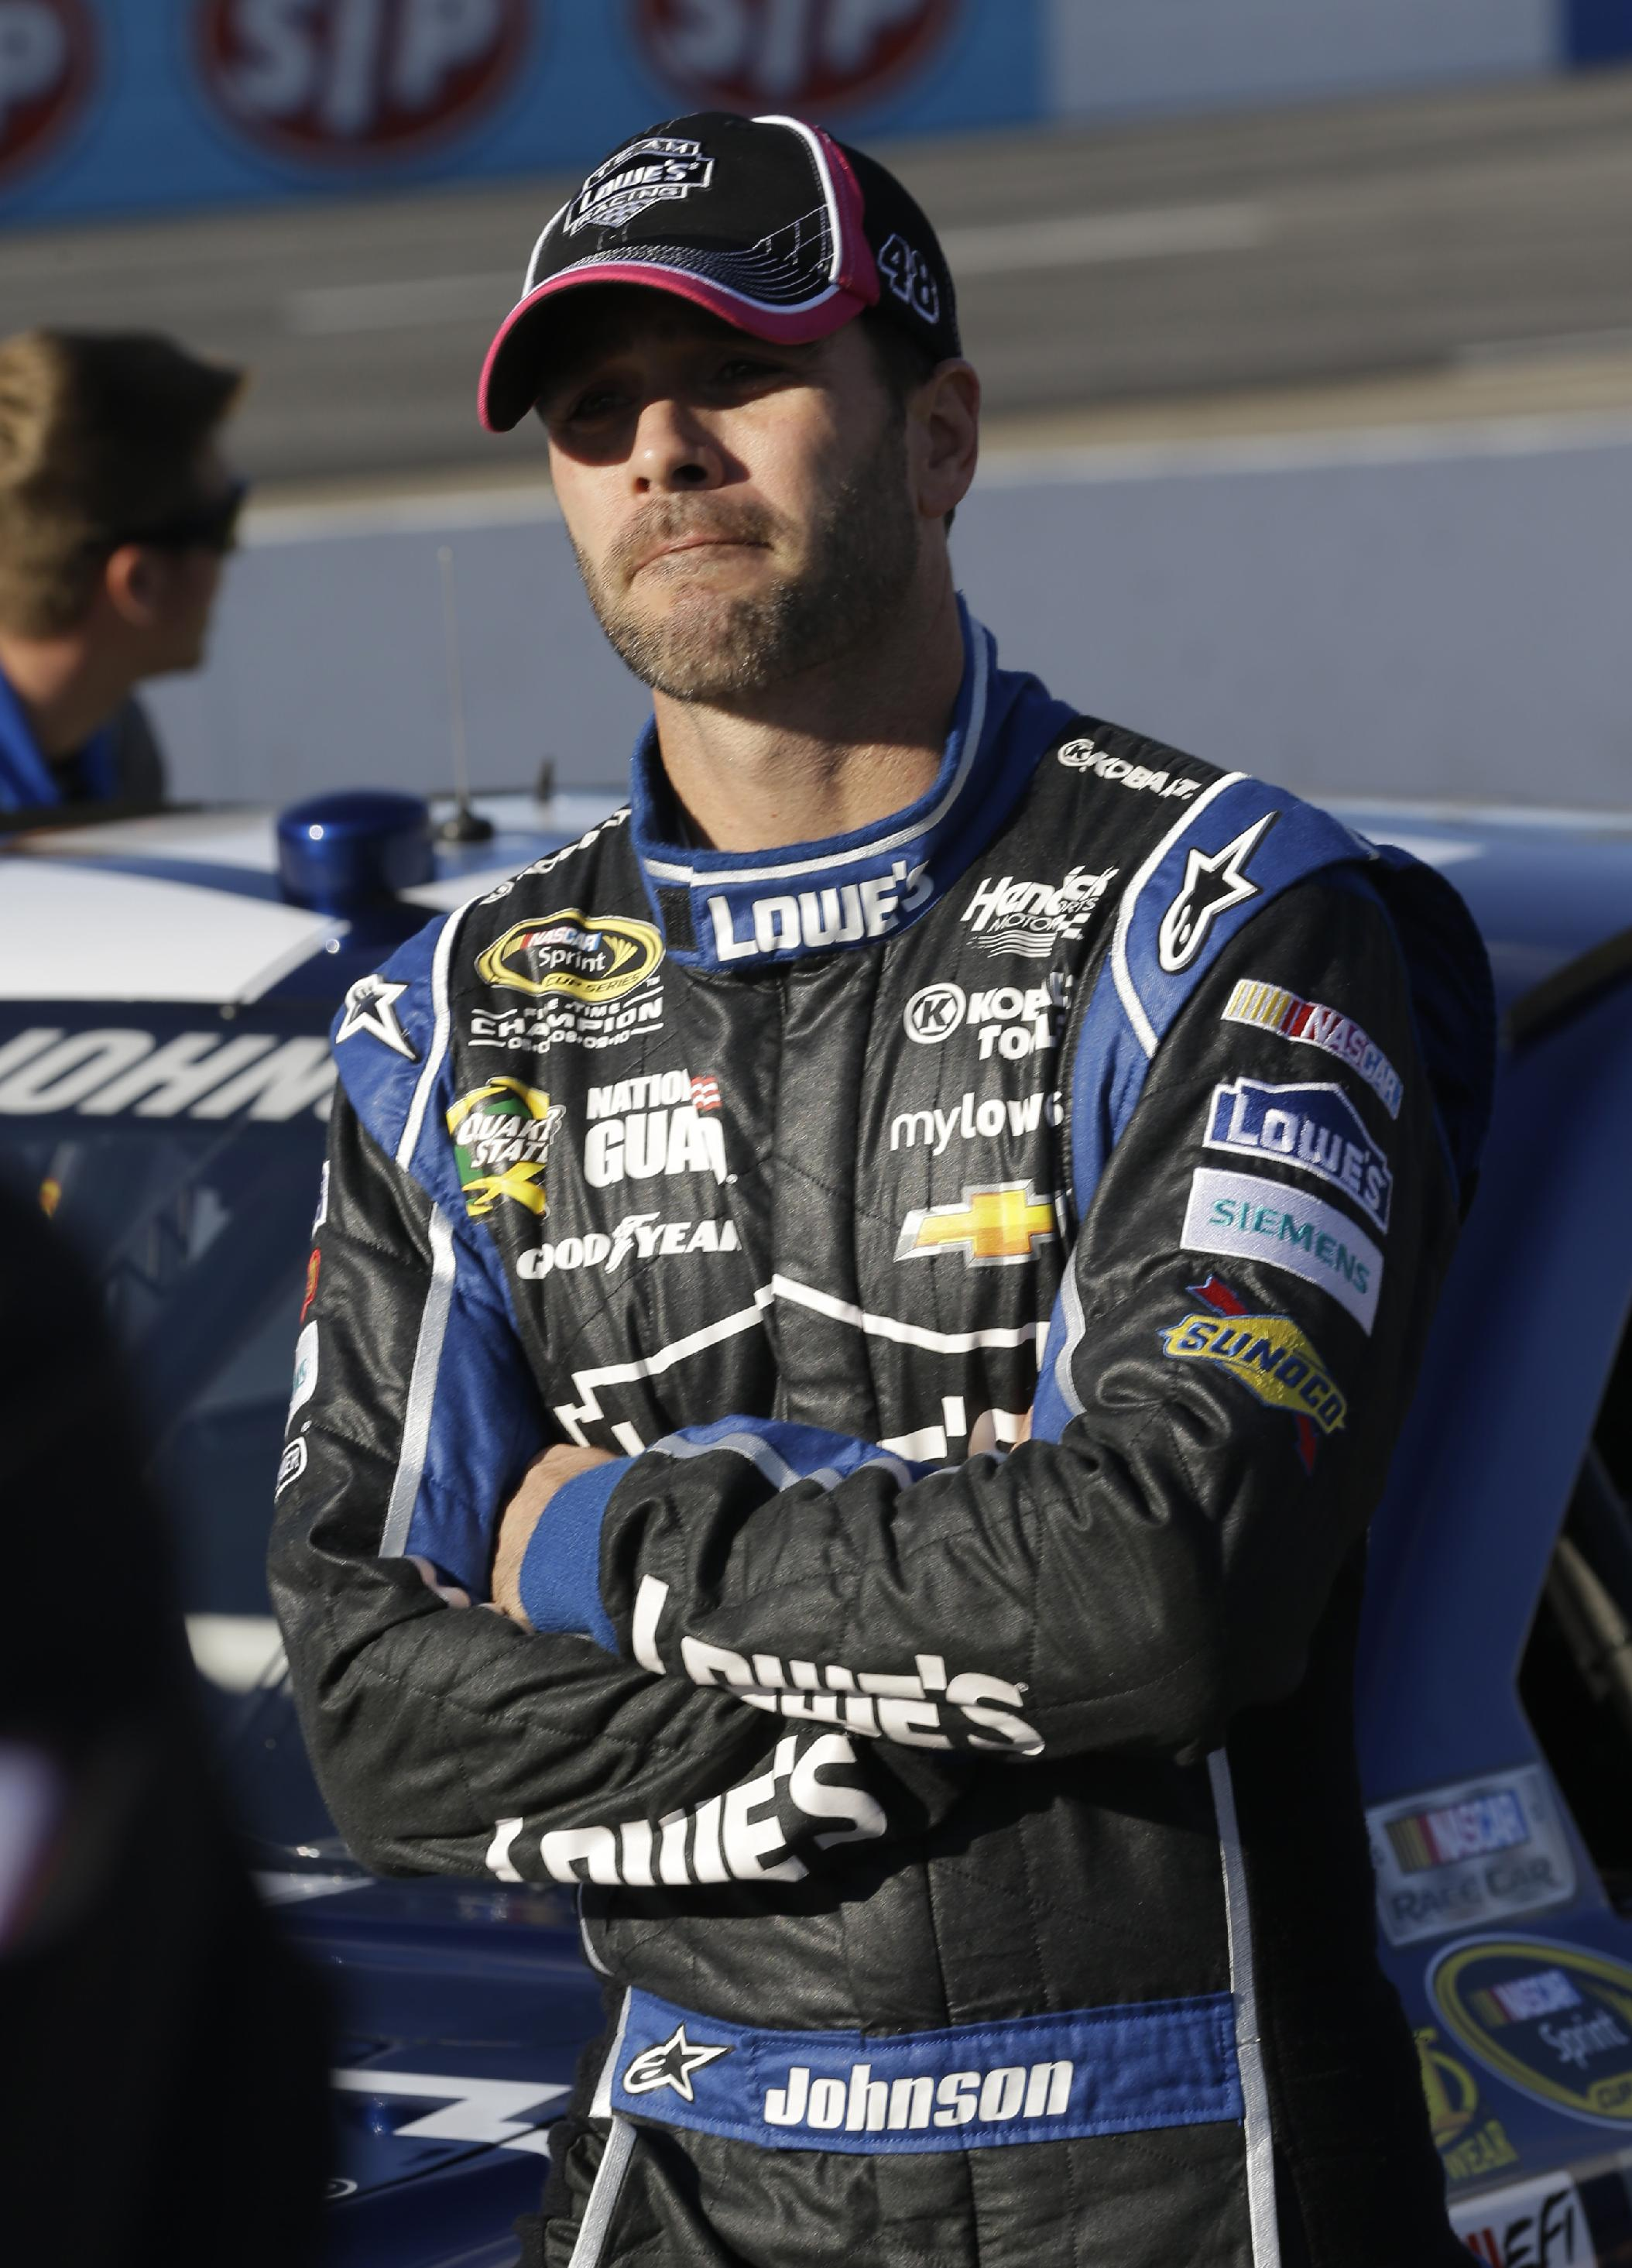 Biffle sorry for not talking to Johnson in private